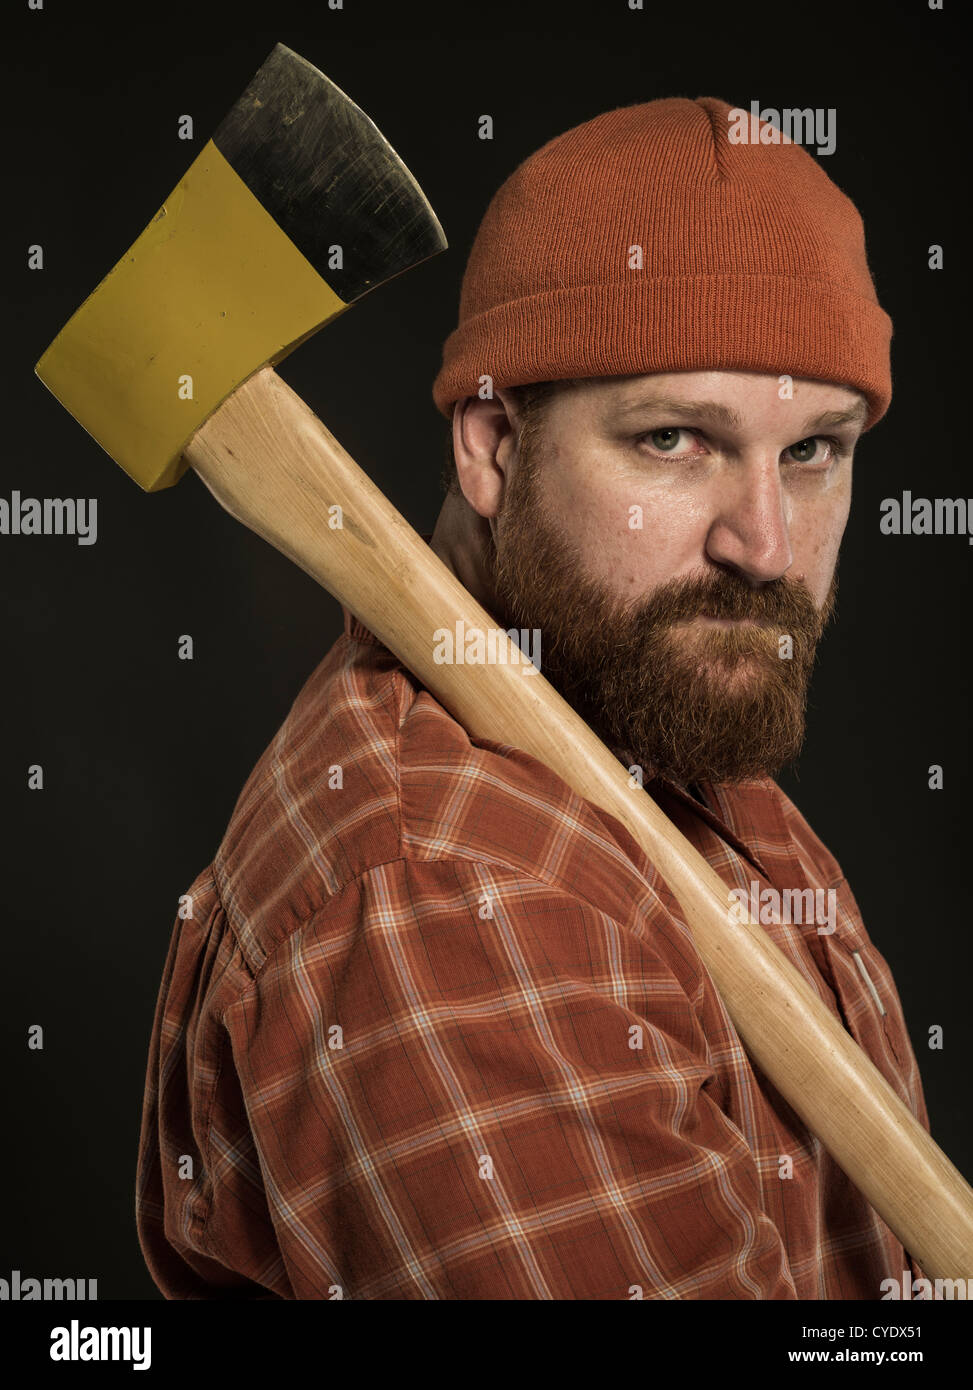 Woodcutter  / Lumberjack  with axe - Stock Image